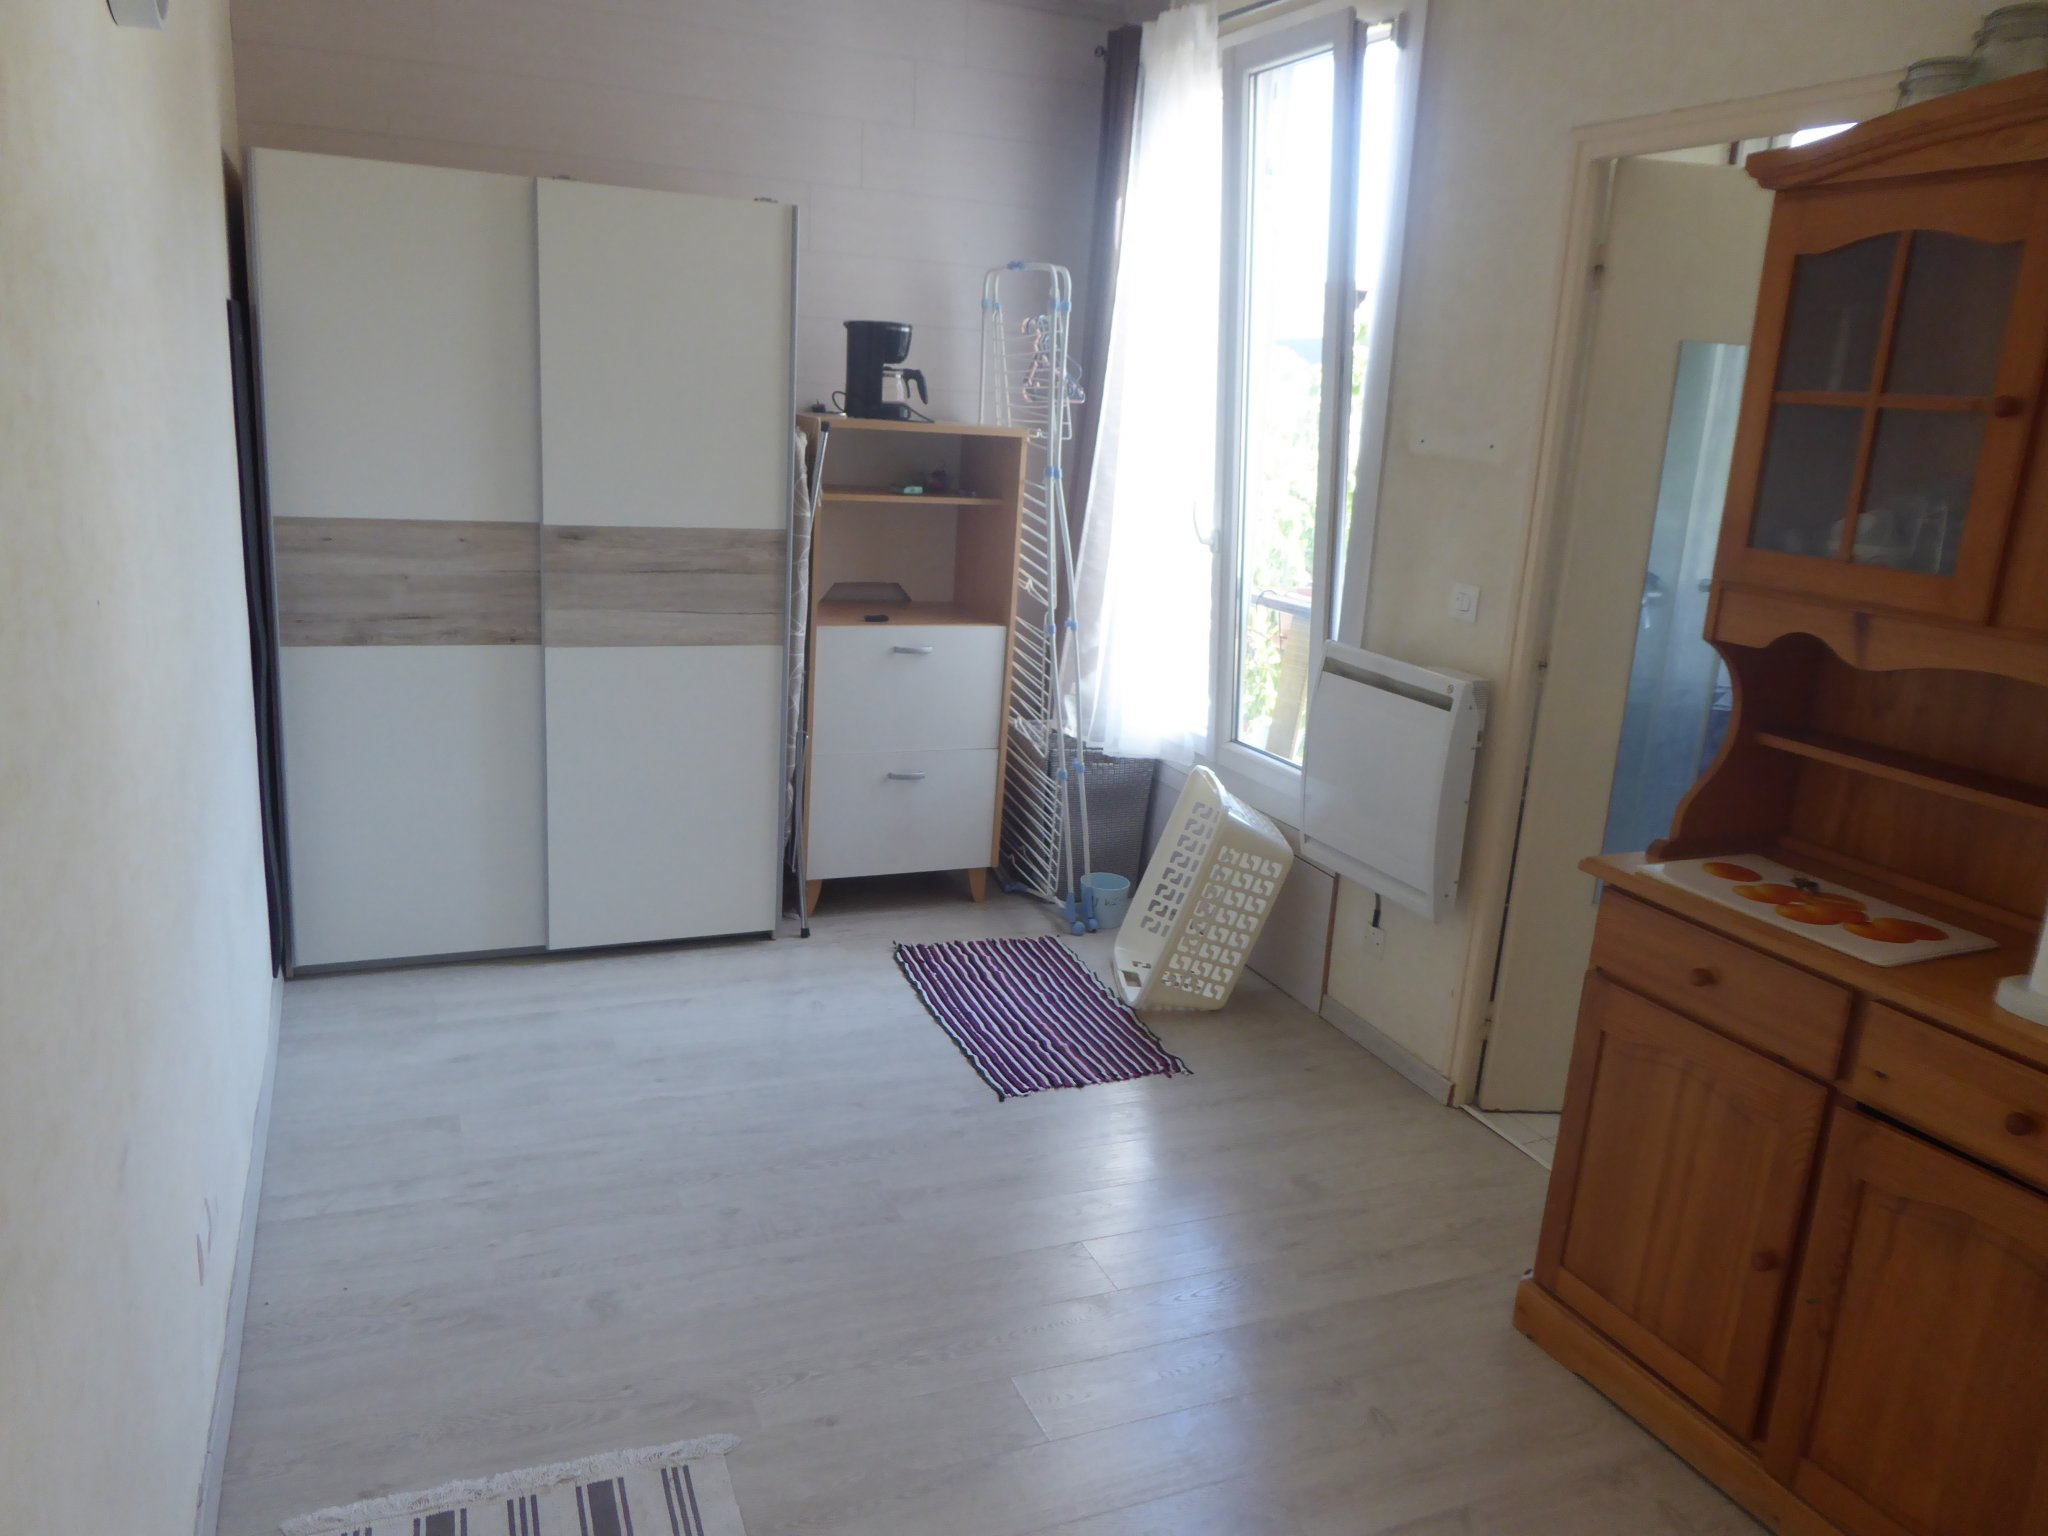 Image_7, Appartement, Vincennes, ref :V440003973